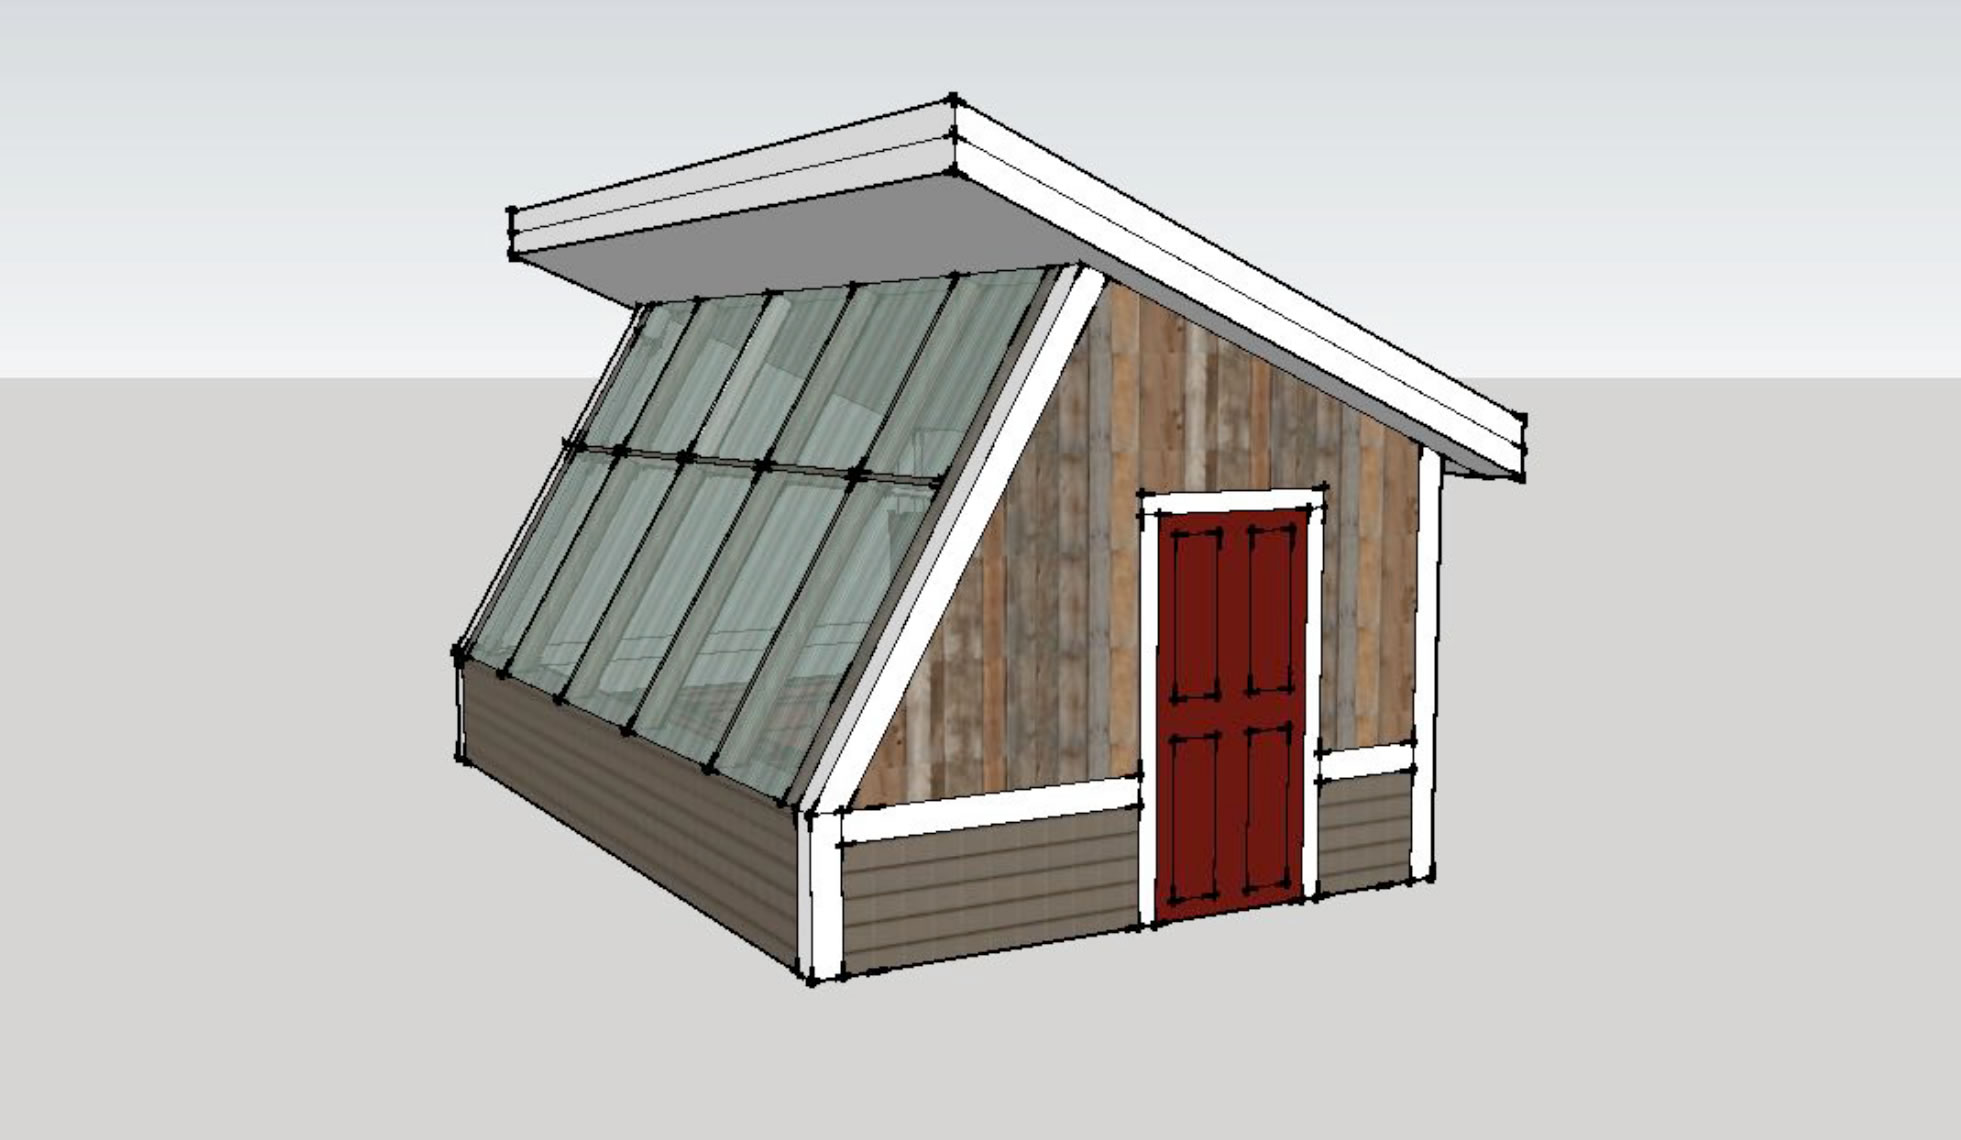 Passive solar design greenhouse design techniques Solar architect